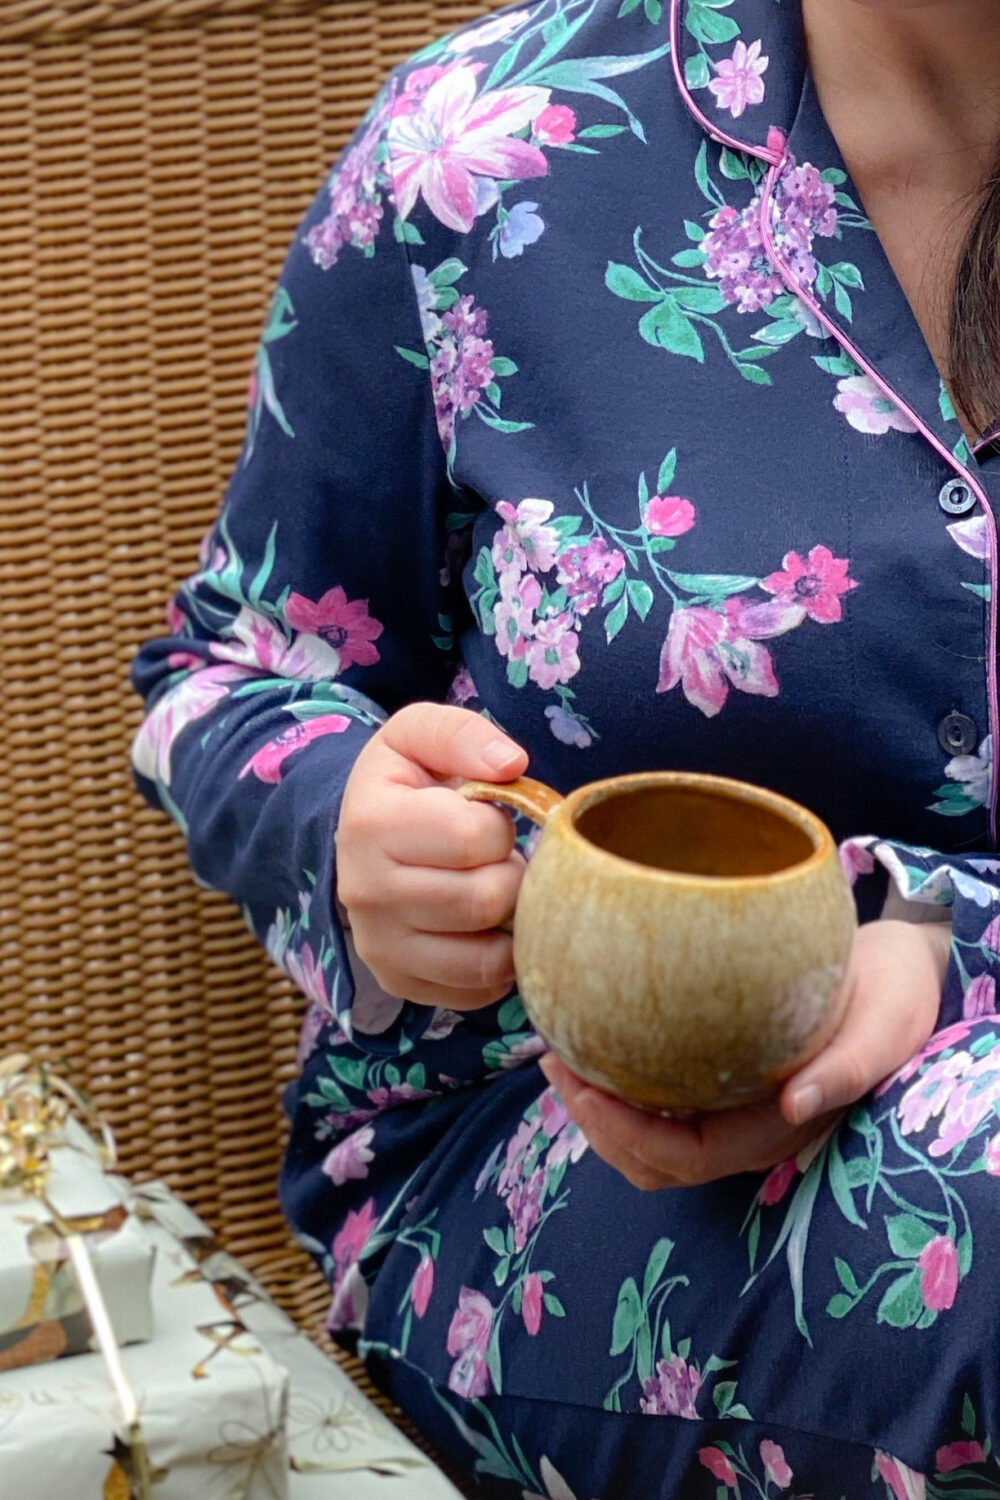 woman in navy and pink floral pajams holding brown coffee mug next to ivory and gold wrapped packages